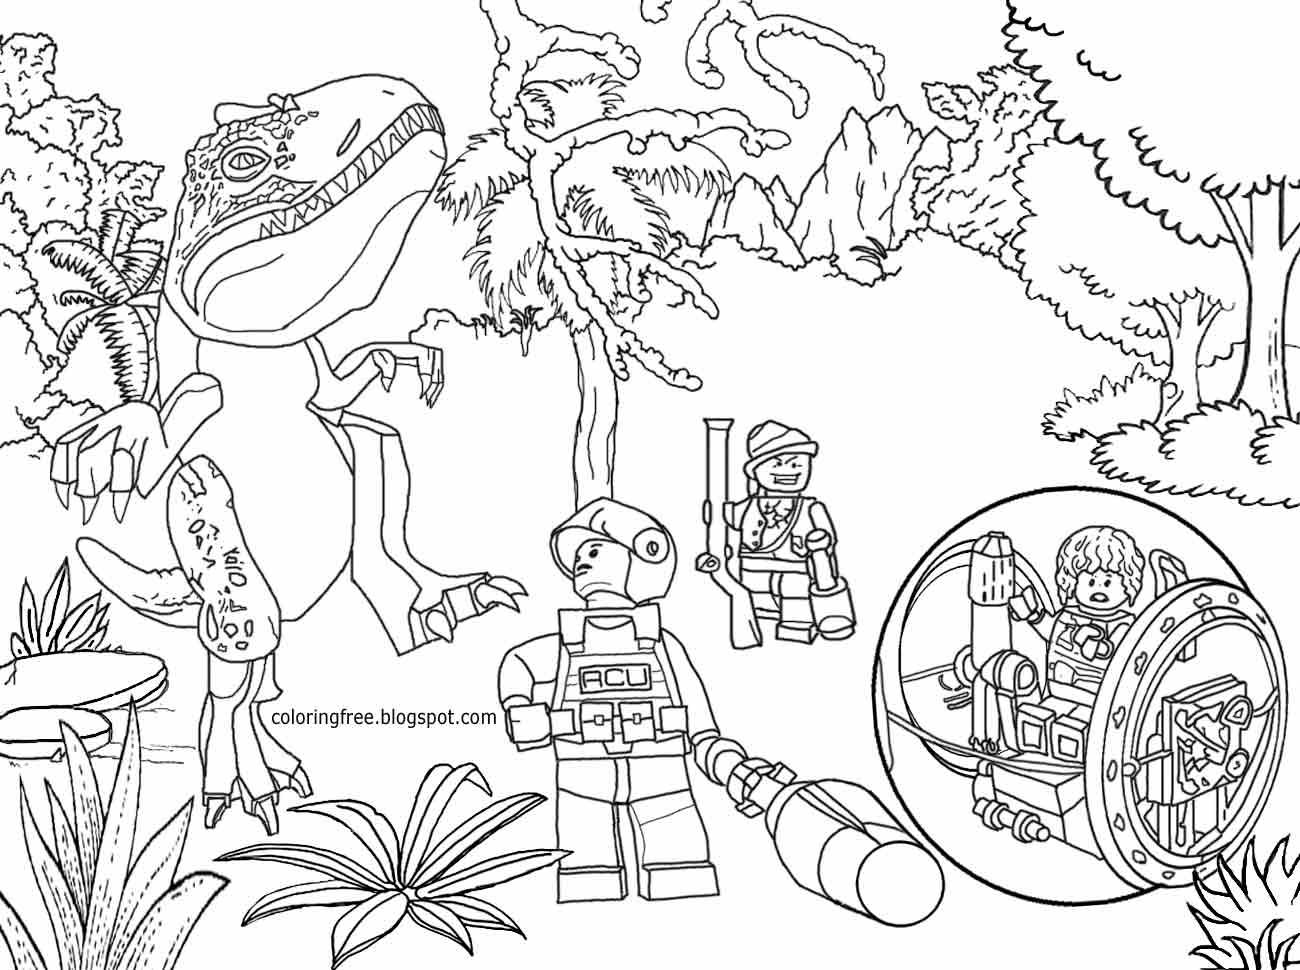 lego dino coloring pages. Black Bedroom Furniture Sets. Home Design Ideas